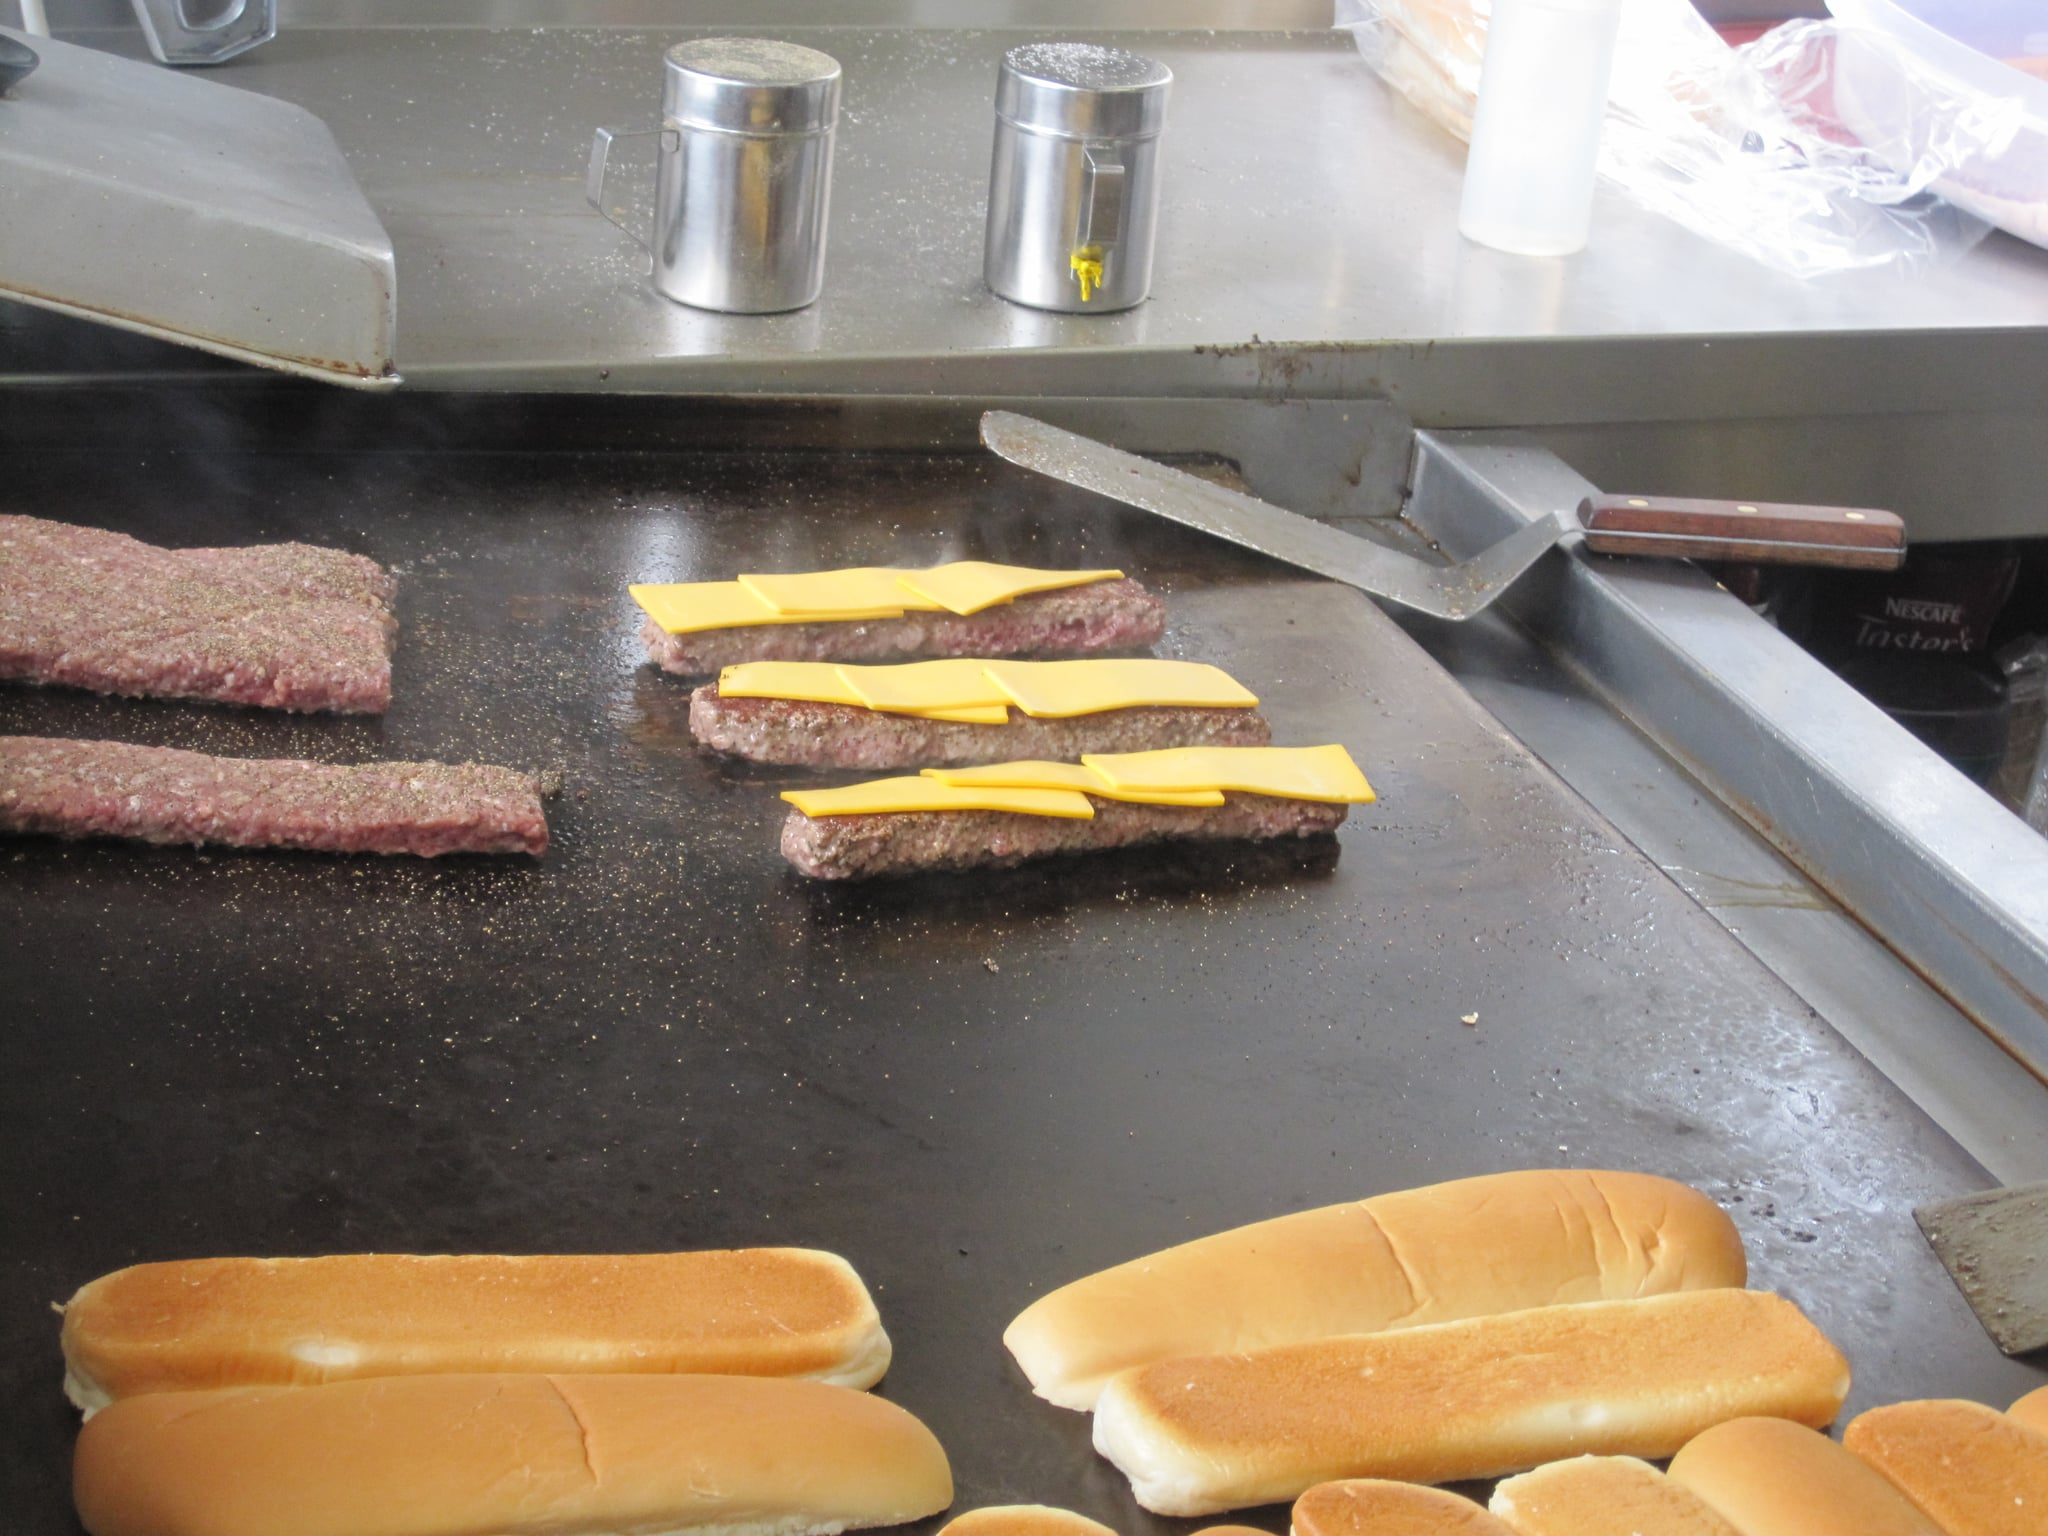 Back to the burger! After a quick flip, the patties are topped with thick narrow slices of American cheese.